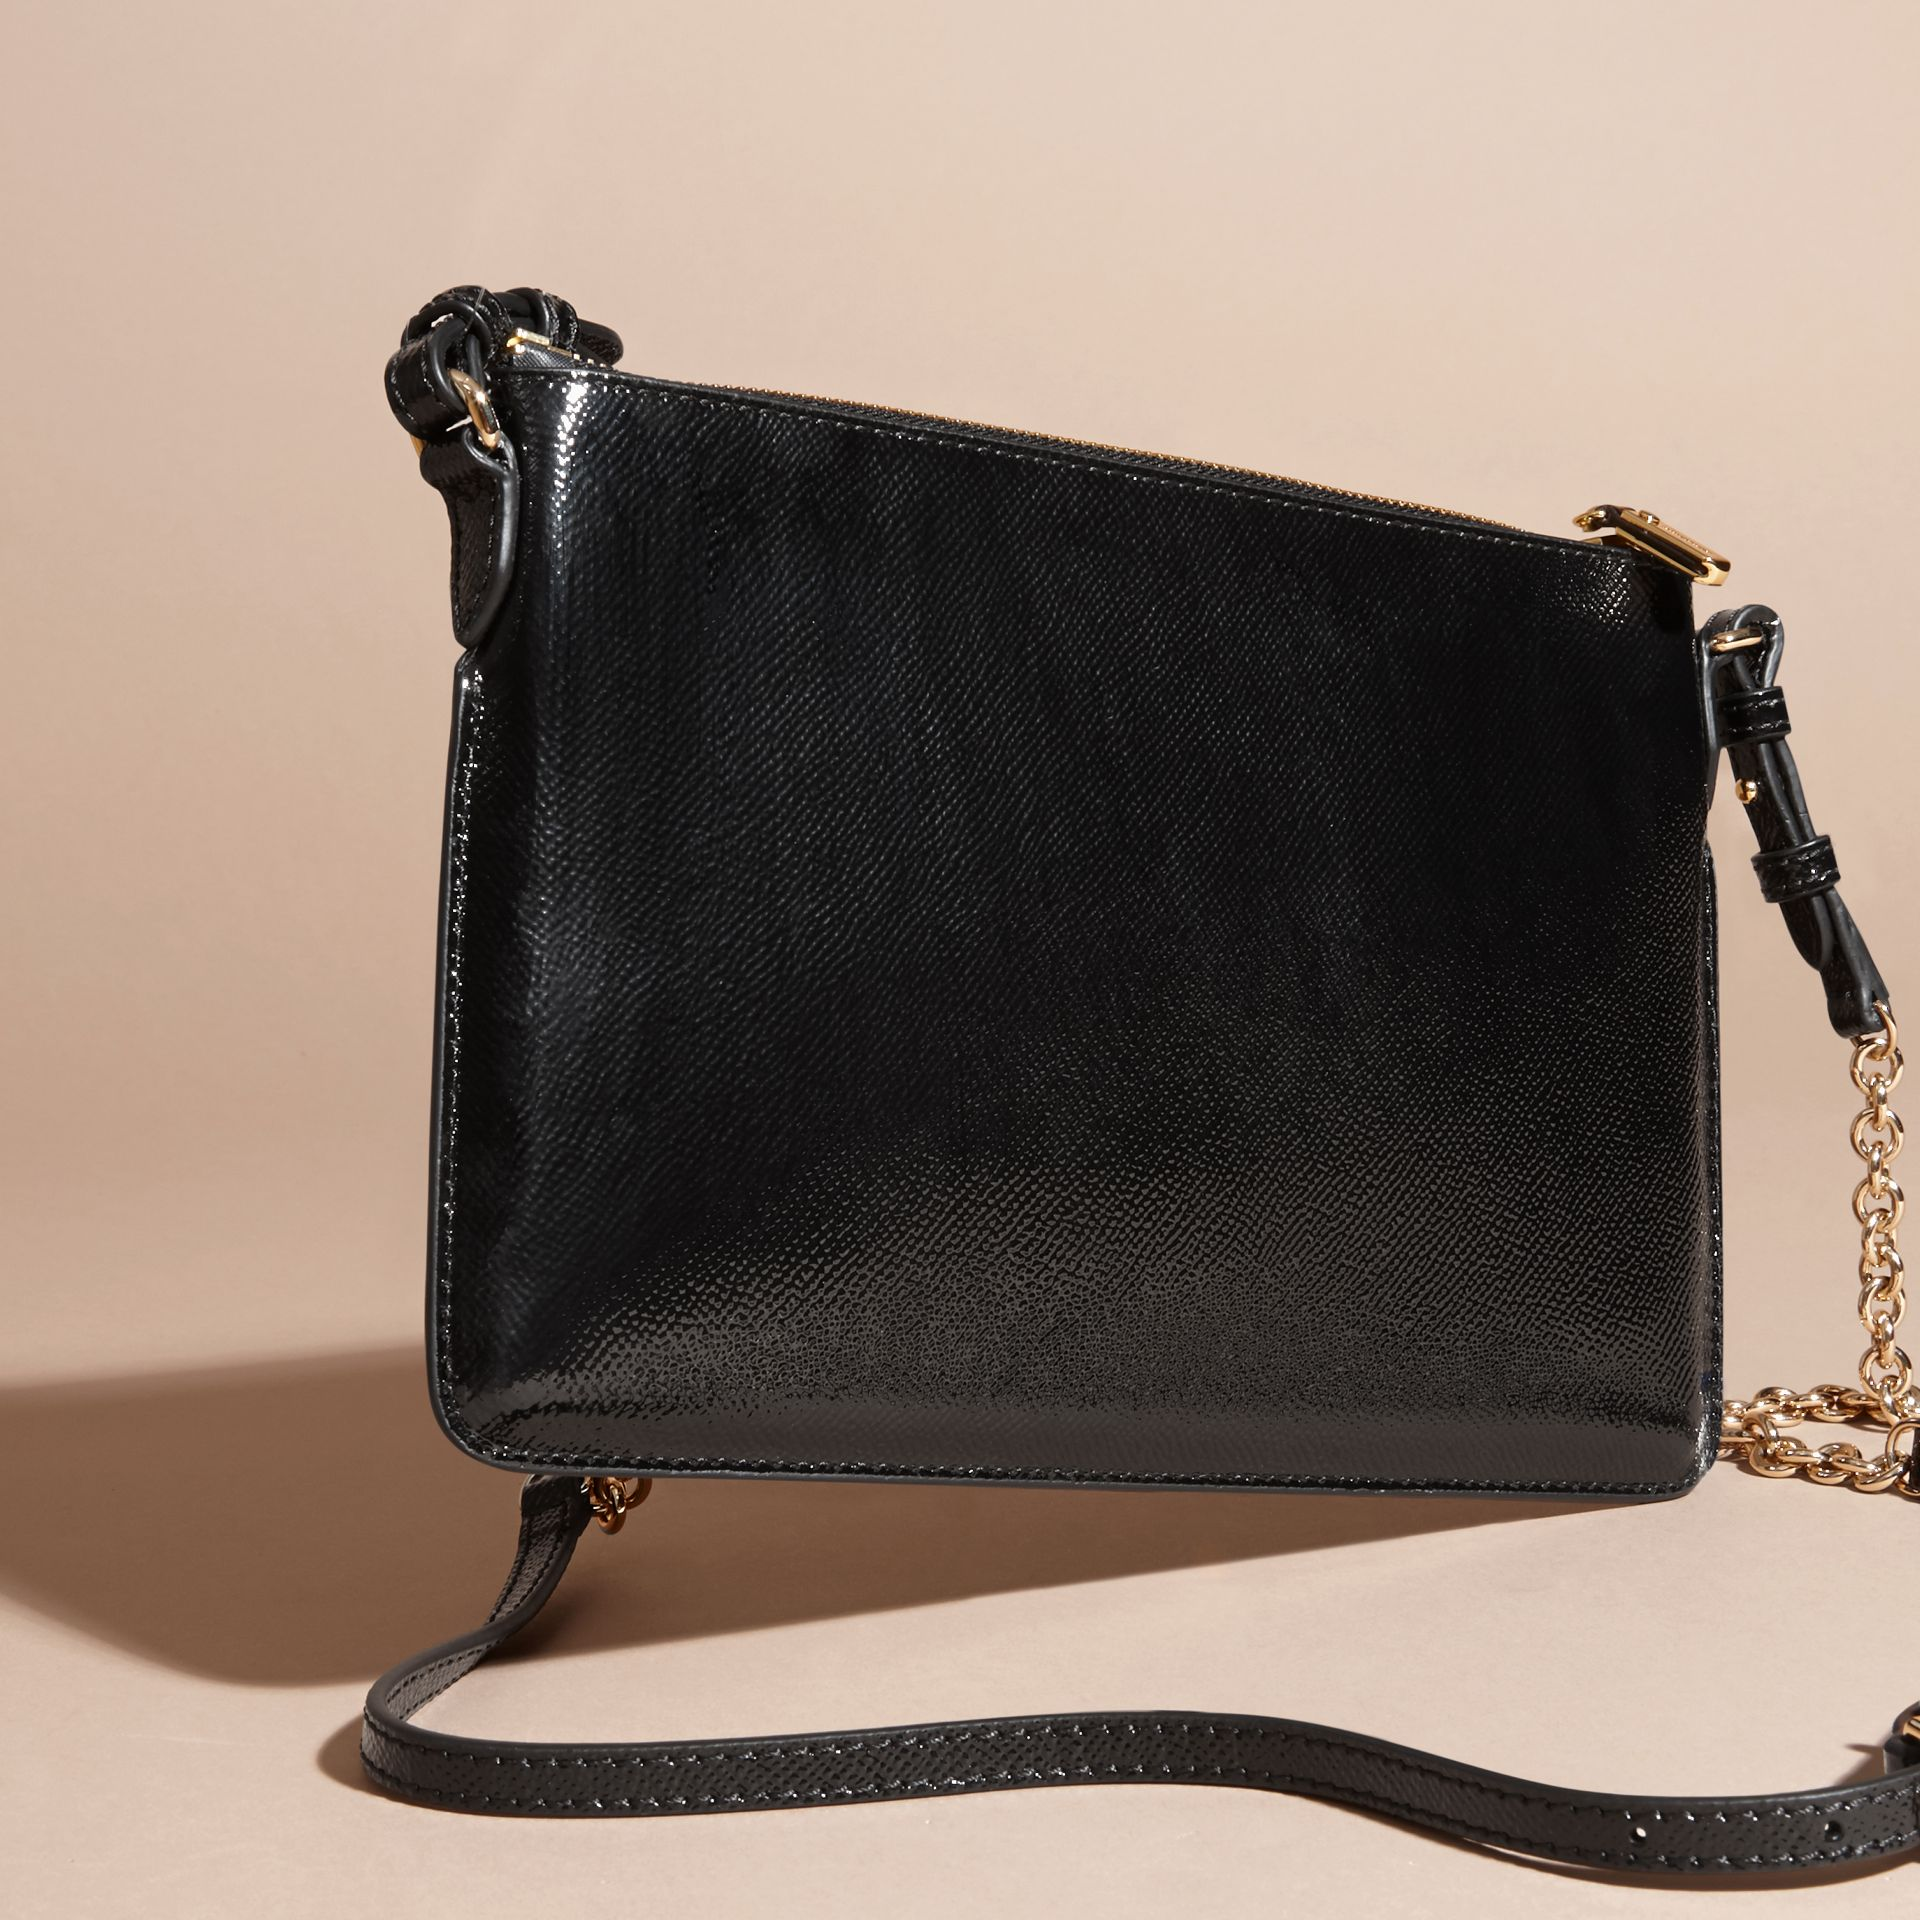 Patent London Leather Clutch Bag in Black - gallery image 5